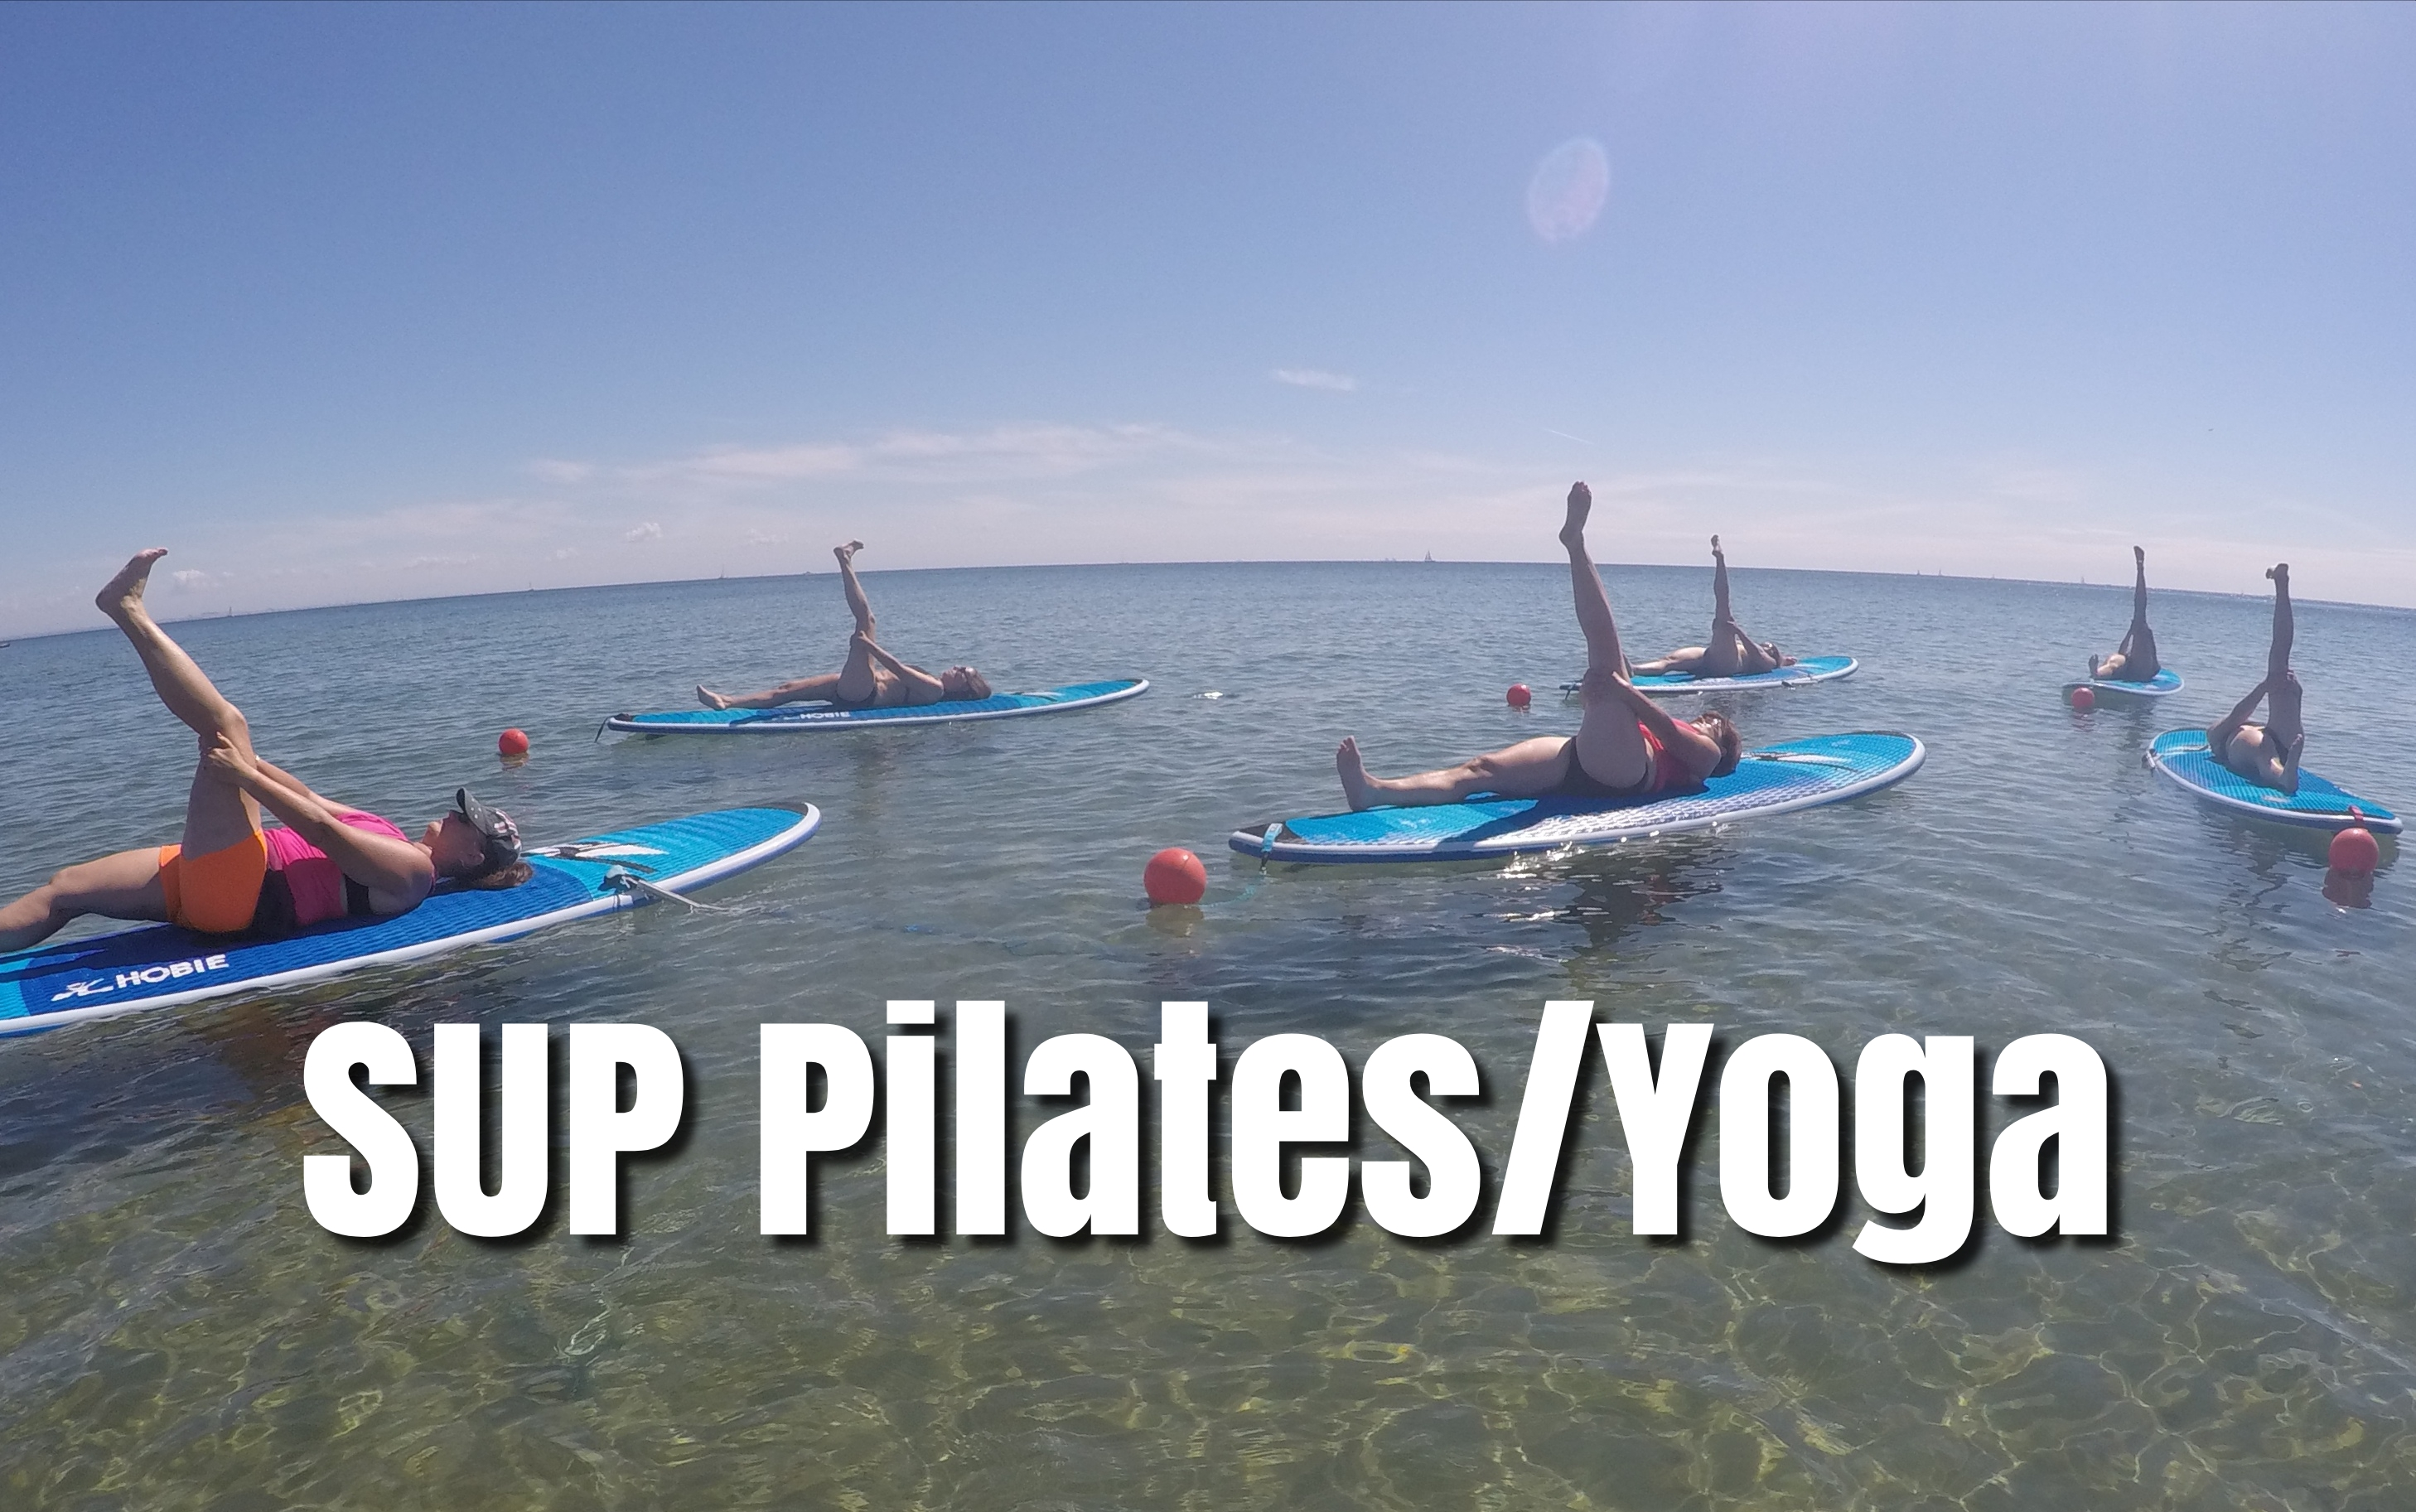 SUP PILATES/YOGA